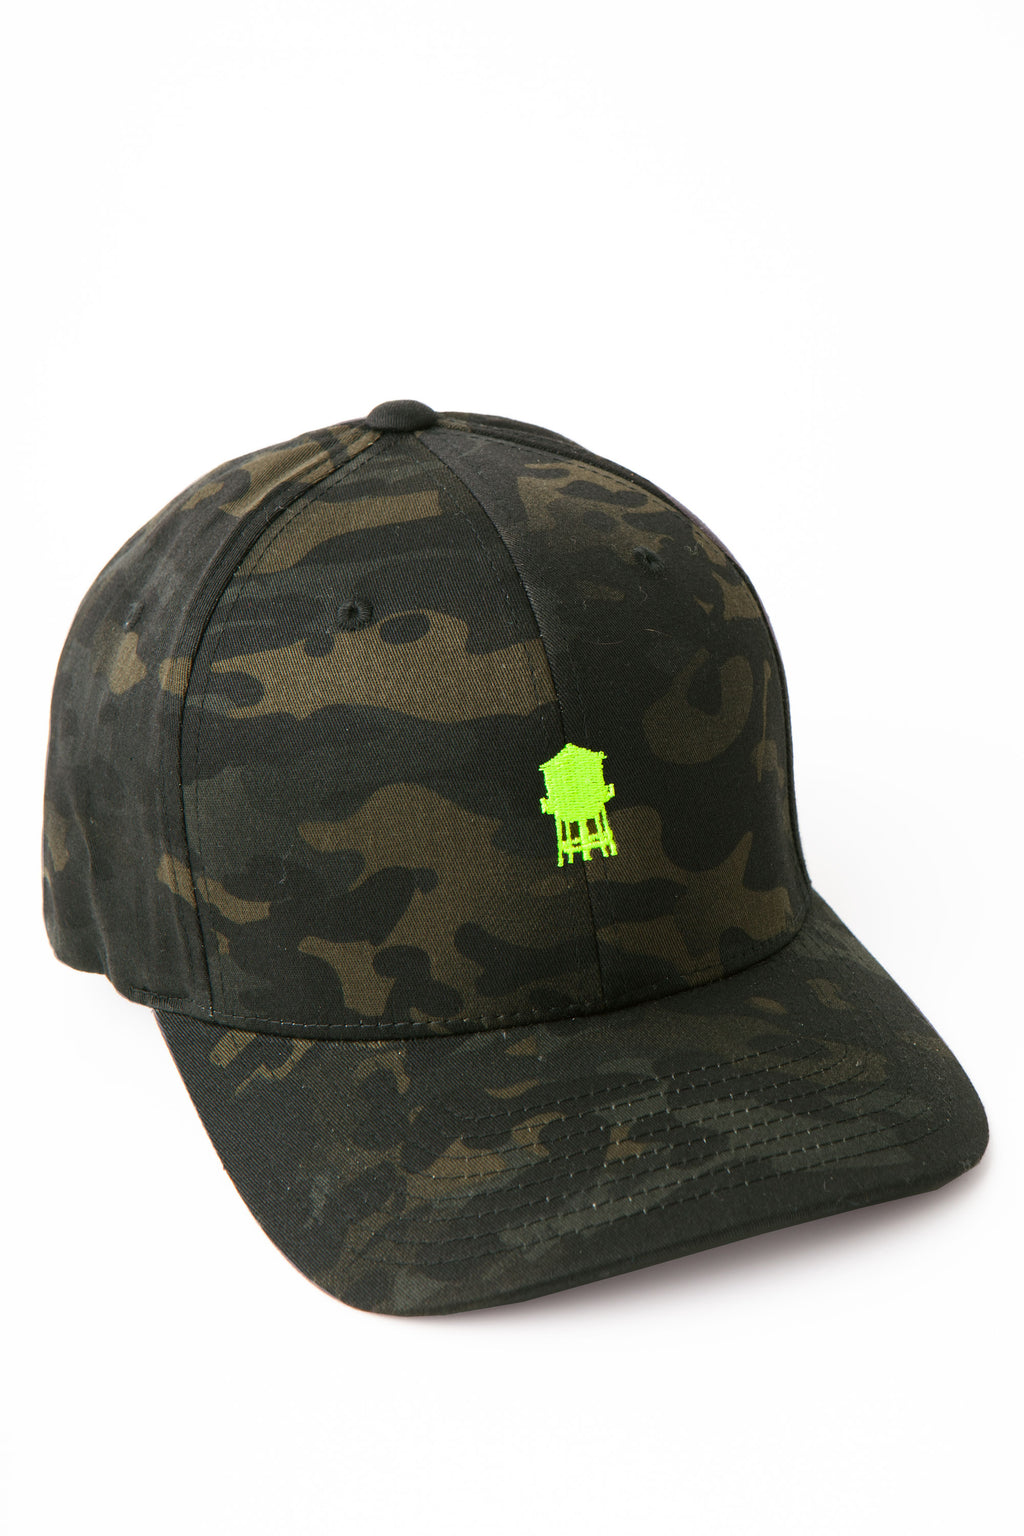 Baseball cap in dark camp with neon green water tower embroidery on front panel.